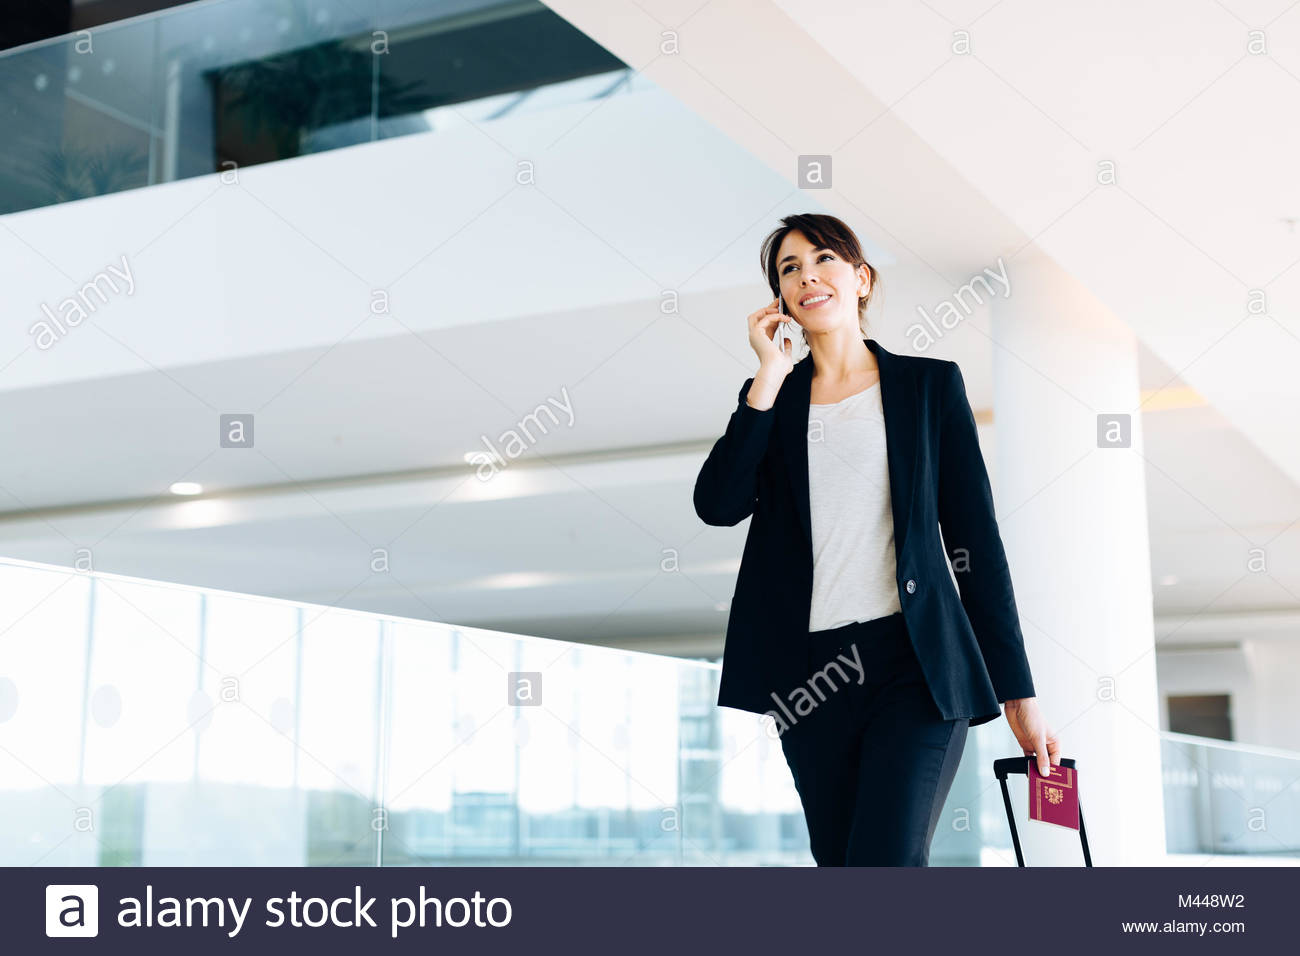 Businesswoman with wheeled luggage in hotel building - Stock Image